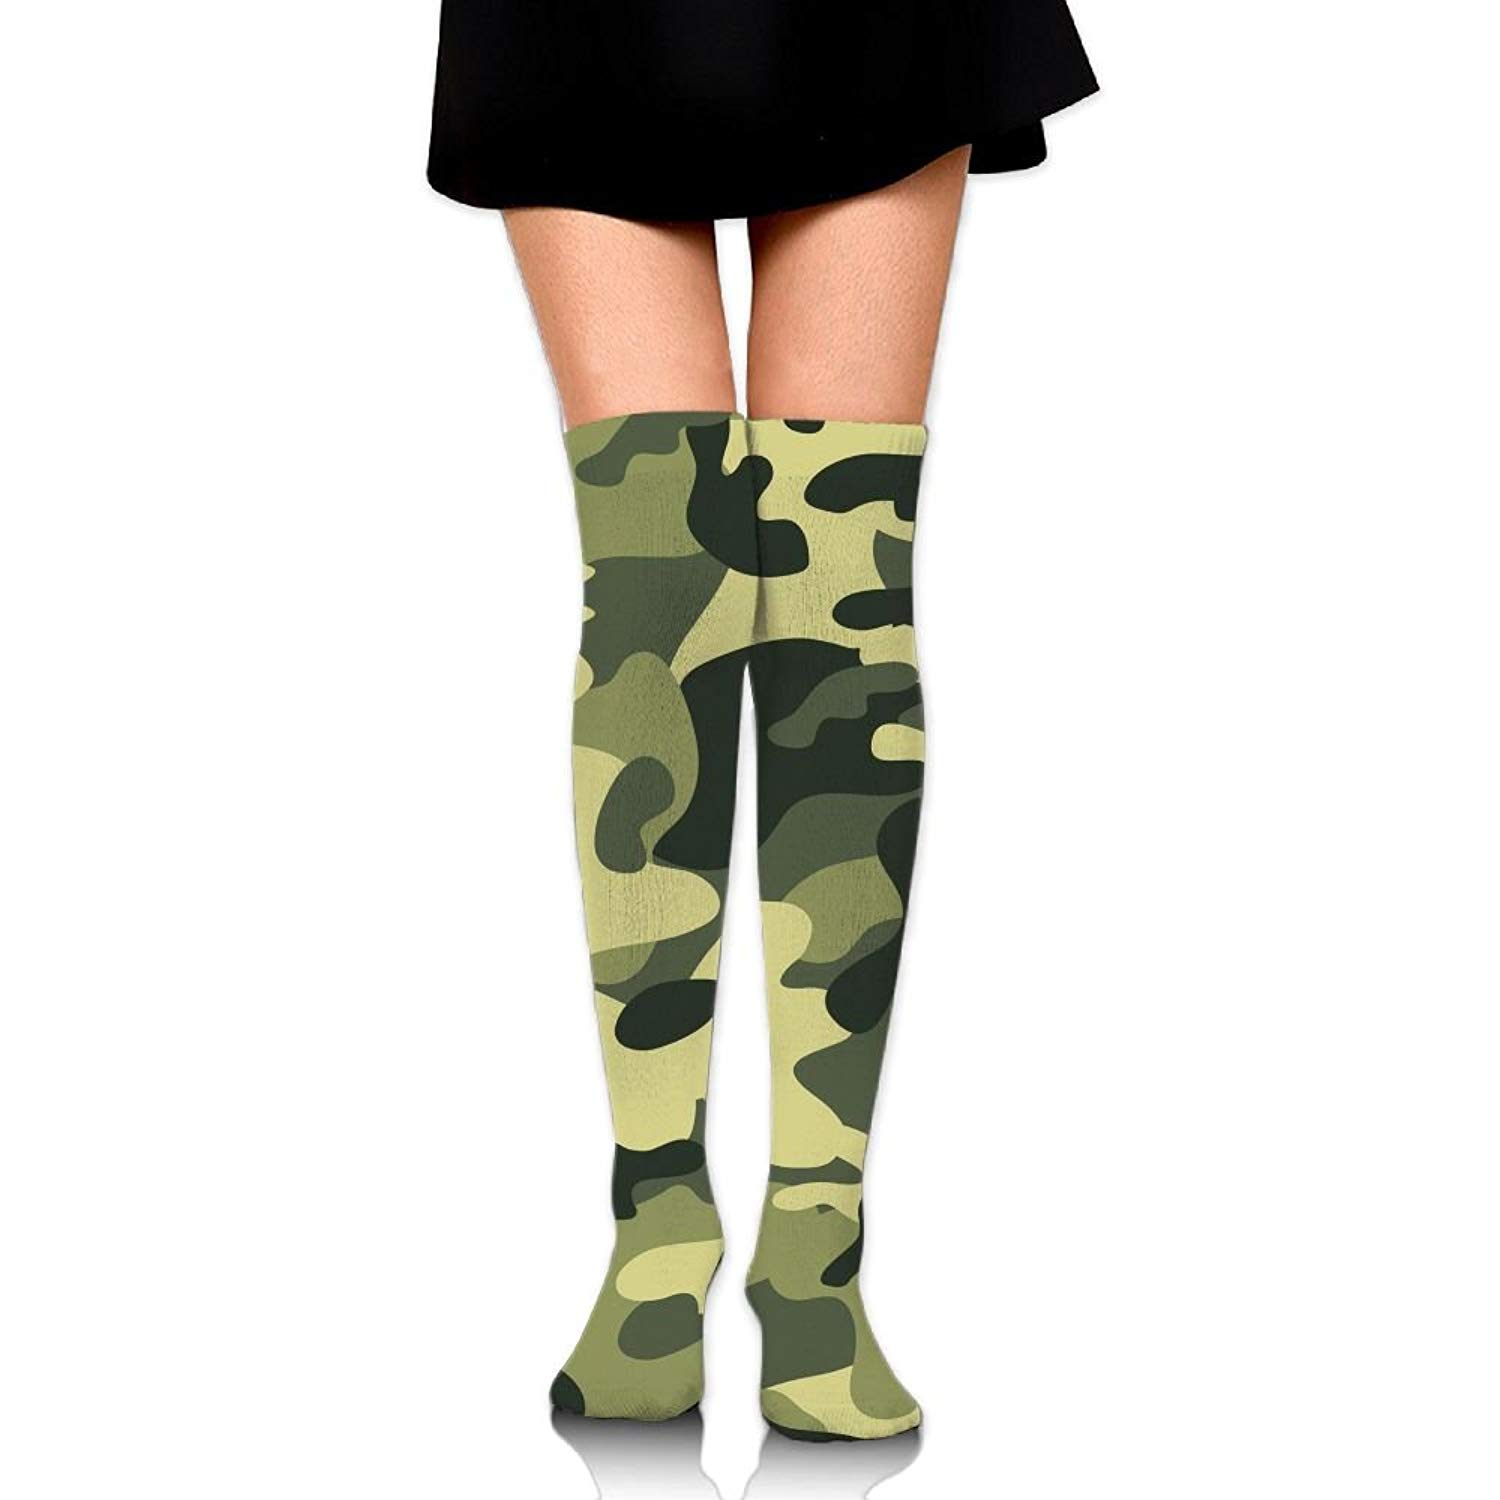 Zaqxsw Camouflage Women Graphic Thigh High Socks Long Socks For Womens